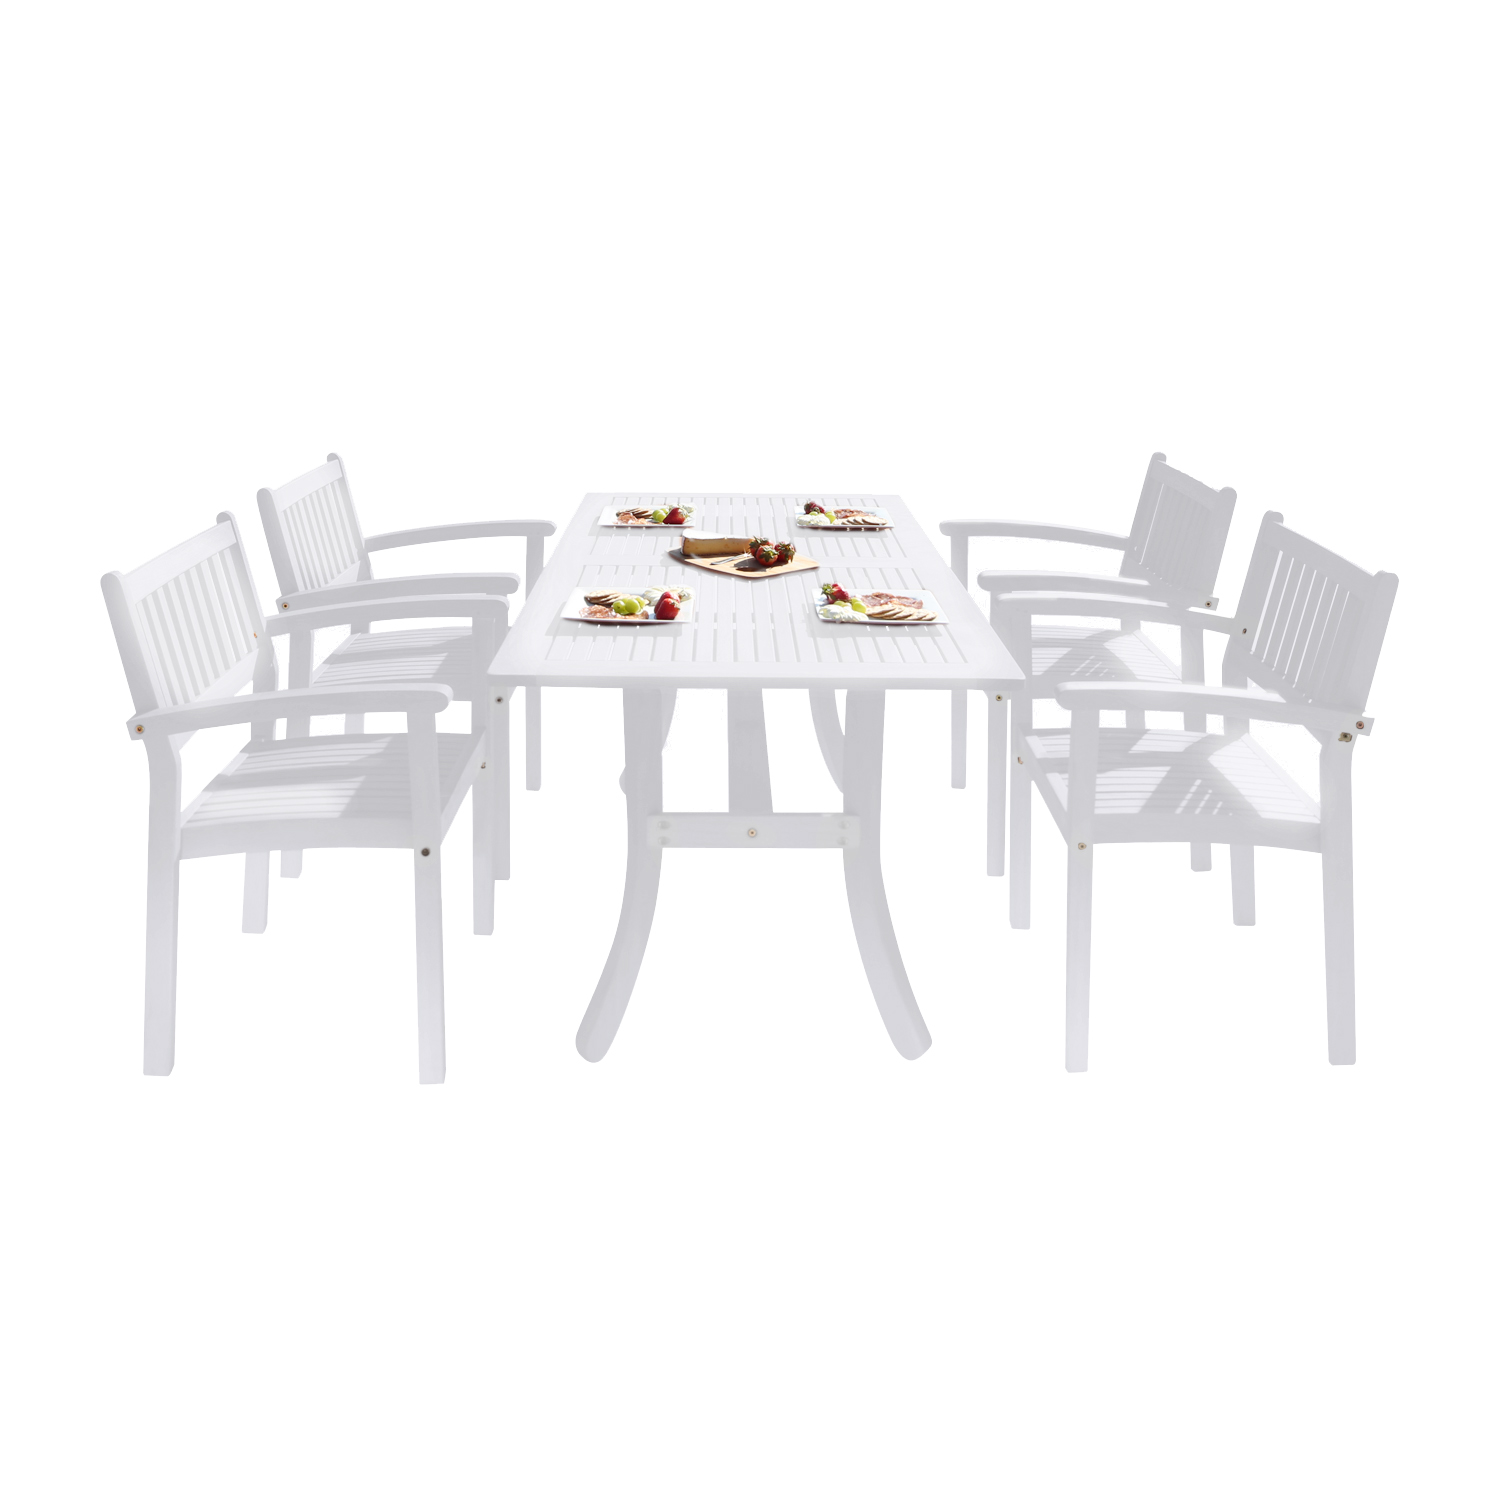 Bradley Outdoor Patio Wood 5-piece Dining Set with Stacking Chairs